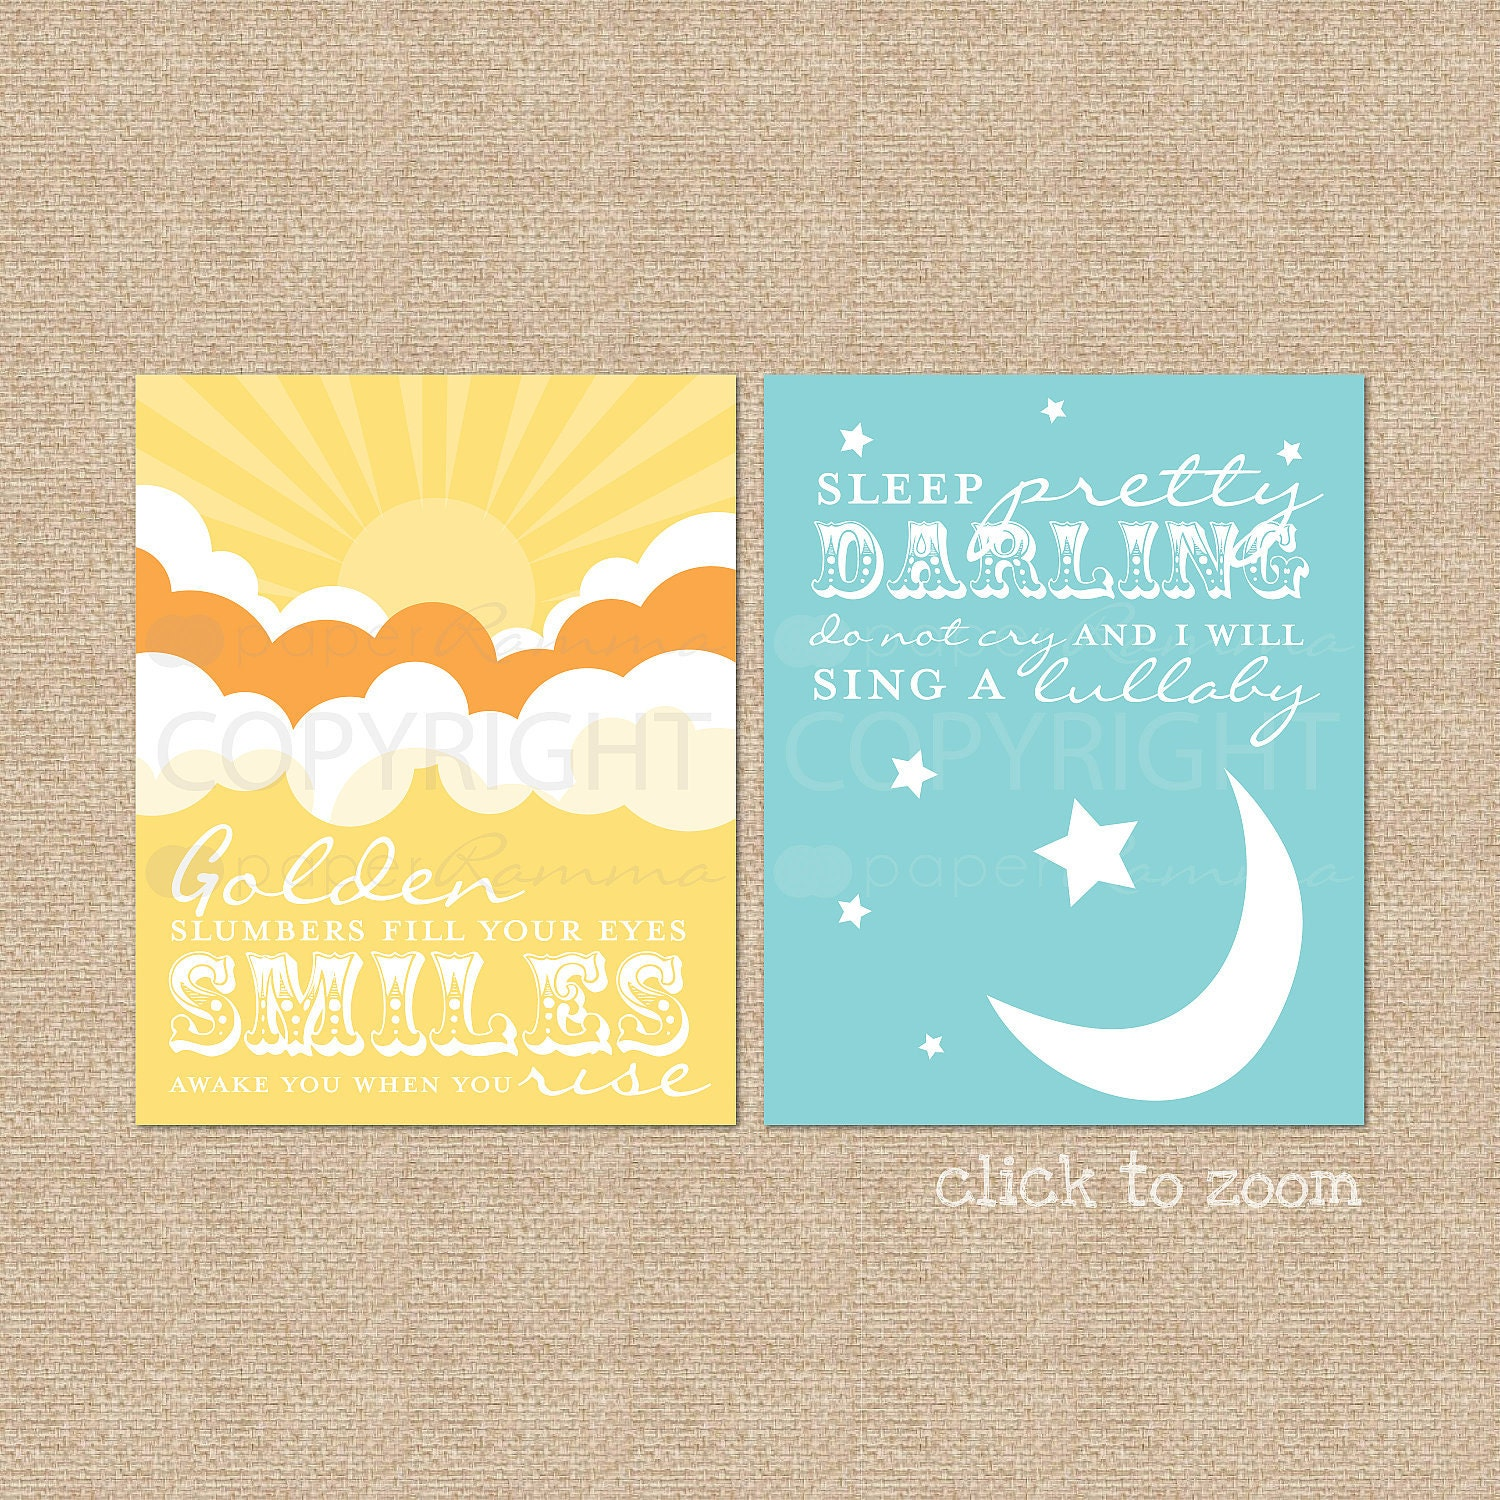 Famous Beatle Quotes: Golden Slumbers Quote By The Beatles // Set Of 2 Nursery